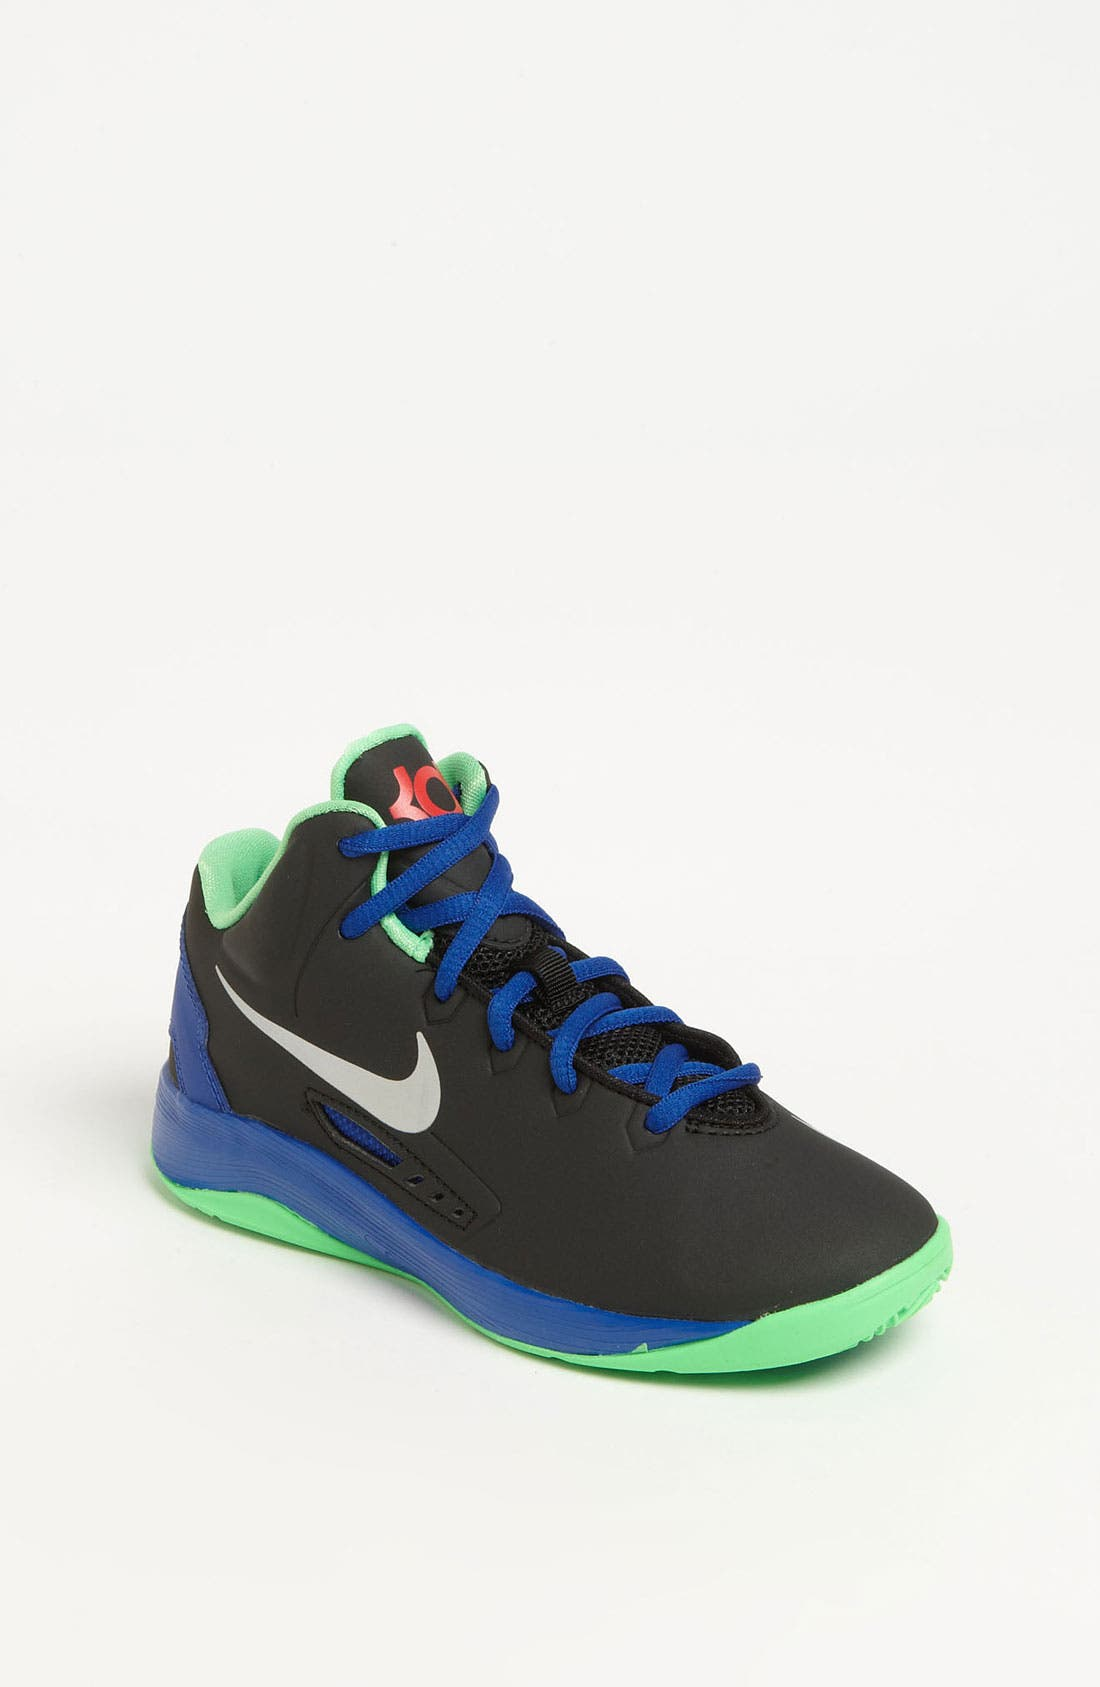 Main Image - Nike 'KD V' Athletic Sneaker (Toddler & Little Kid)